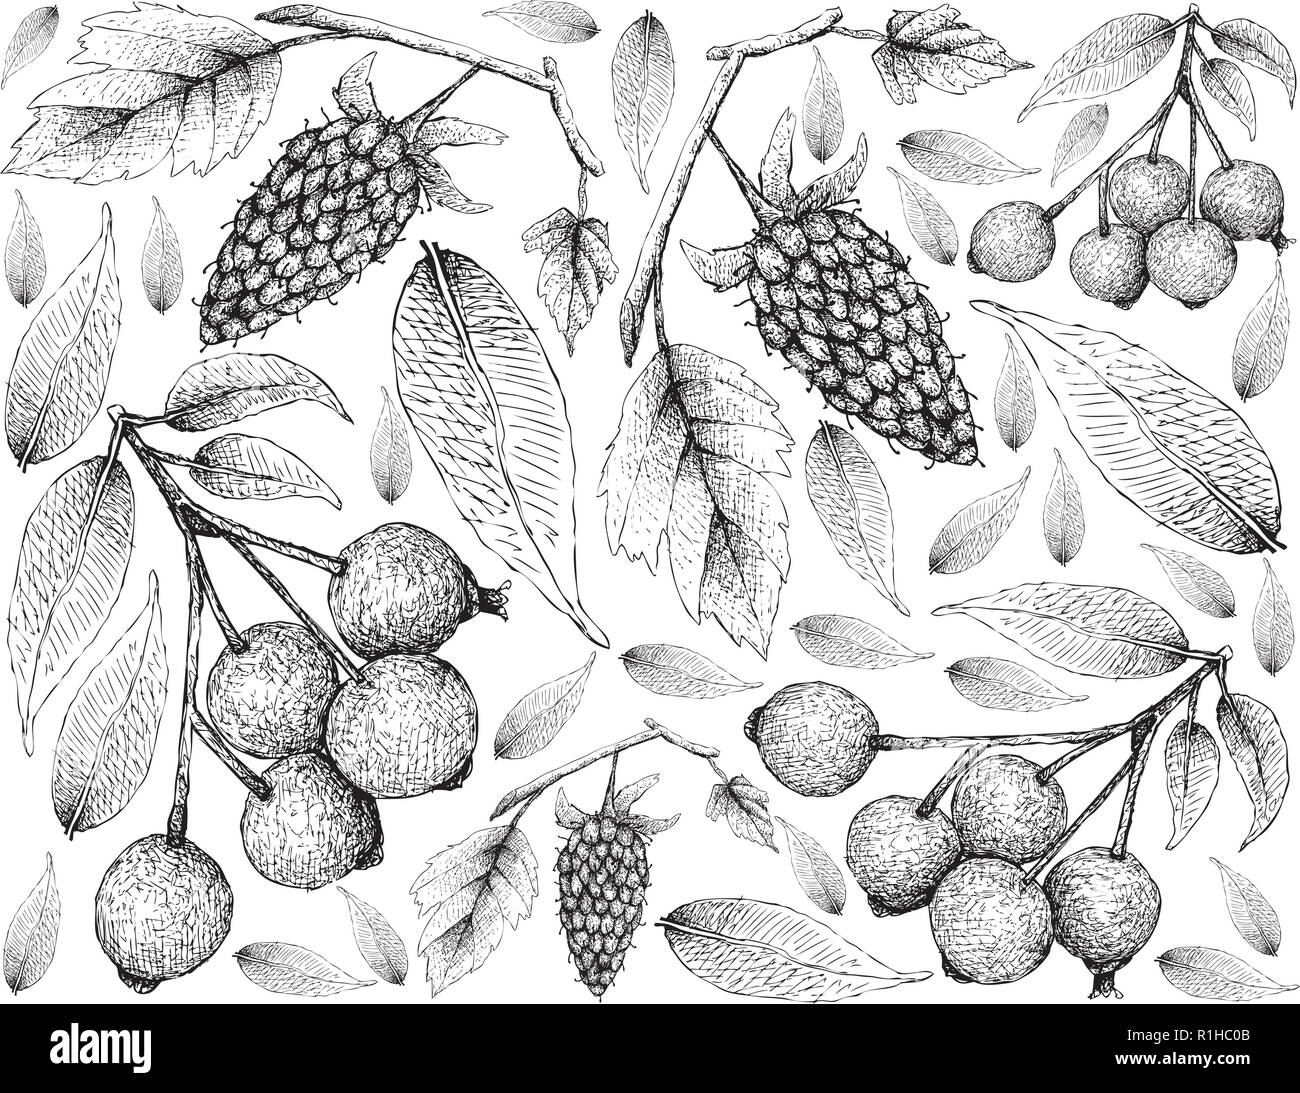 Berry Fruit, Illustration Wallpaper of Hand Drawn Sketch of Loganberries and Magenta Lilly Pilly, Magenta Cherry or Syzygium Paniculatum Fruits Isolat - Stock Vector